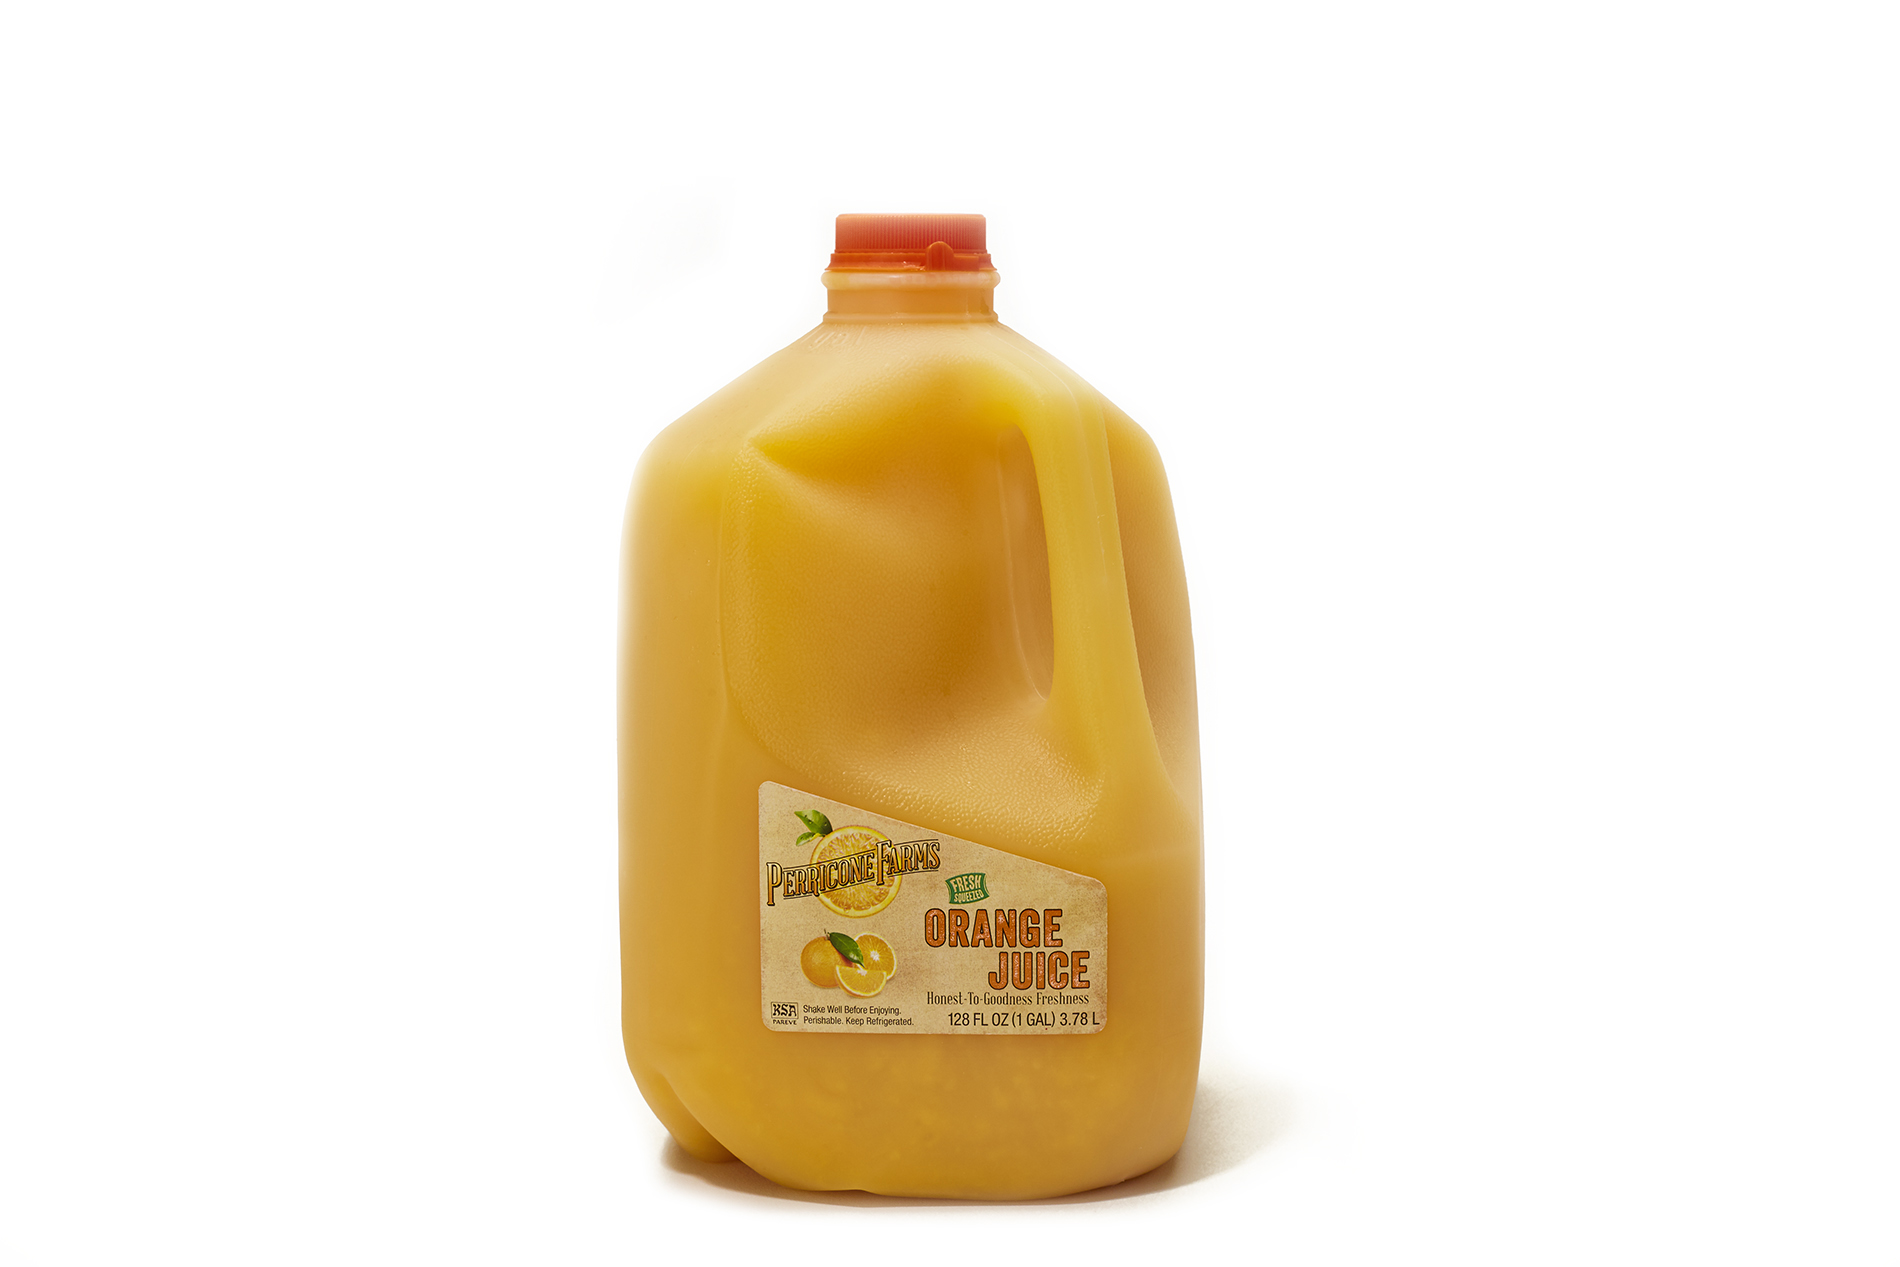 Gallon jug of fresh orange juice